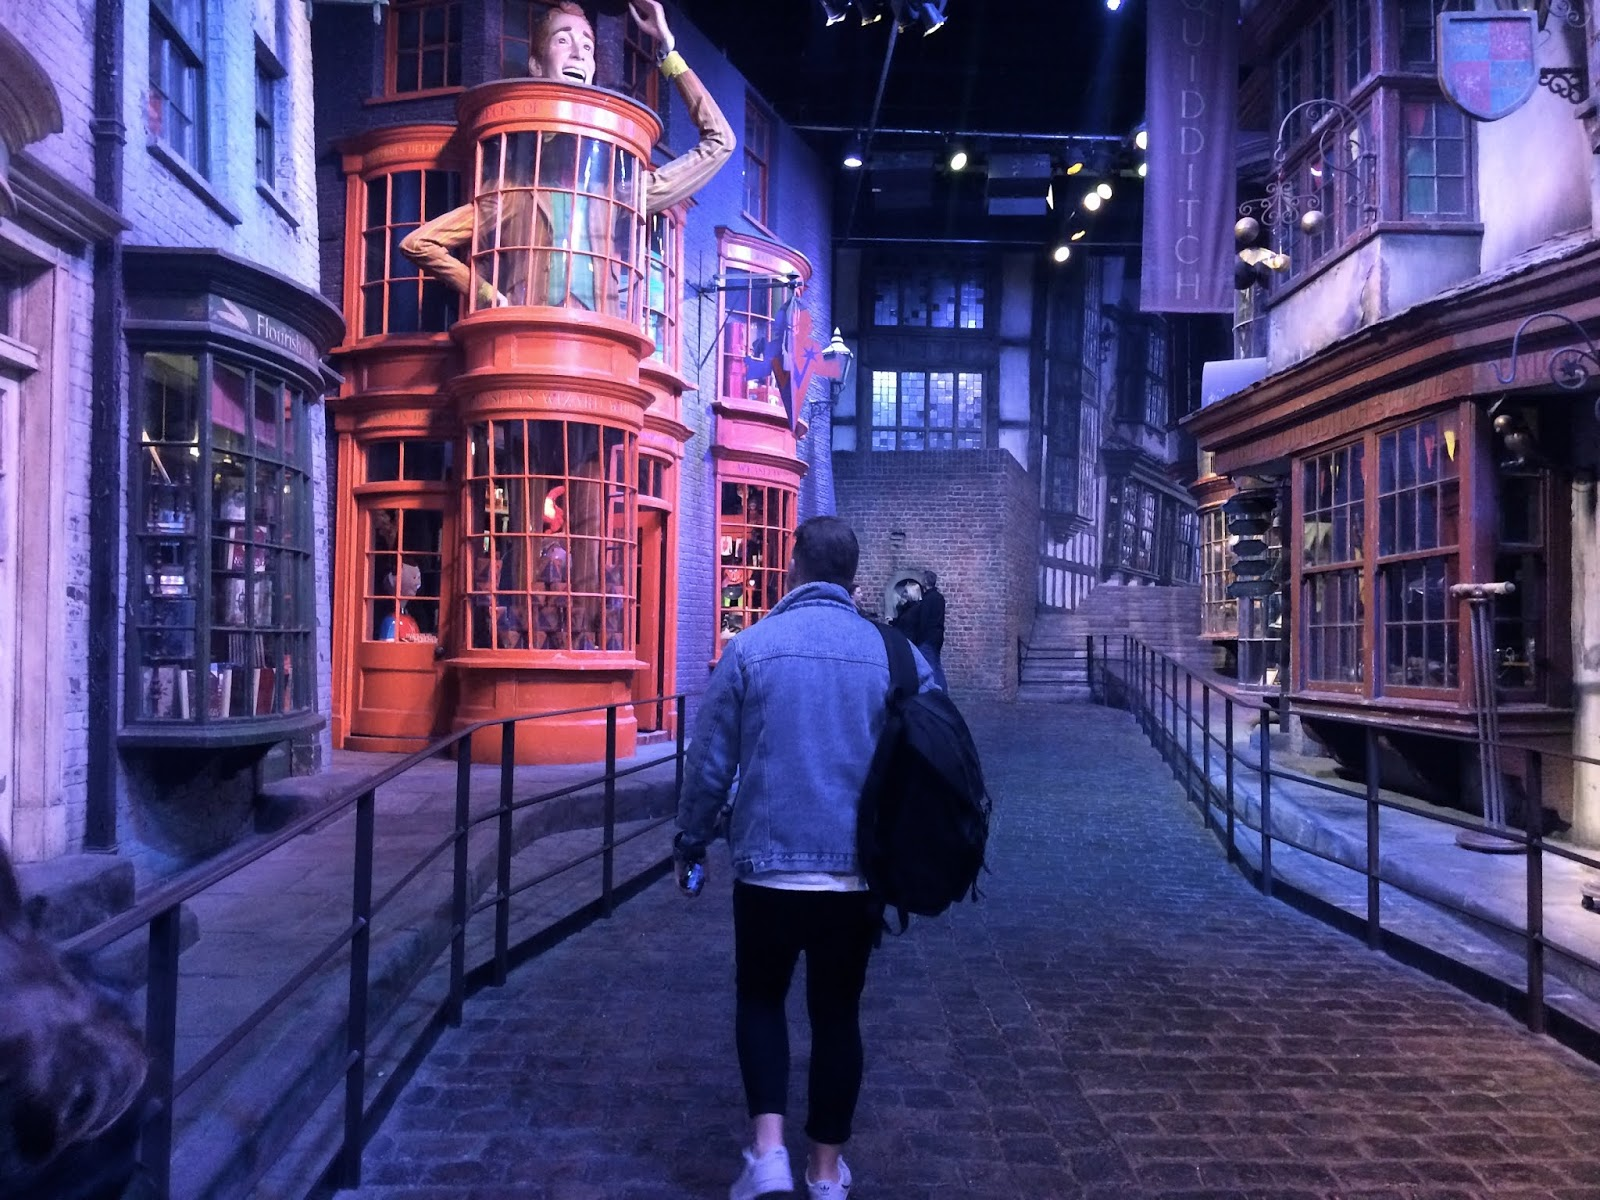 Walking through the set of Diagon Alley